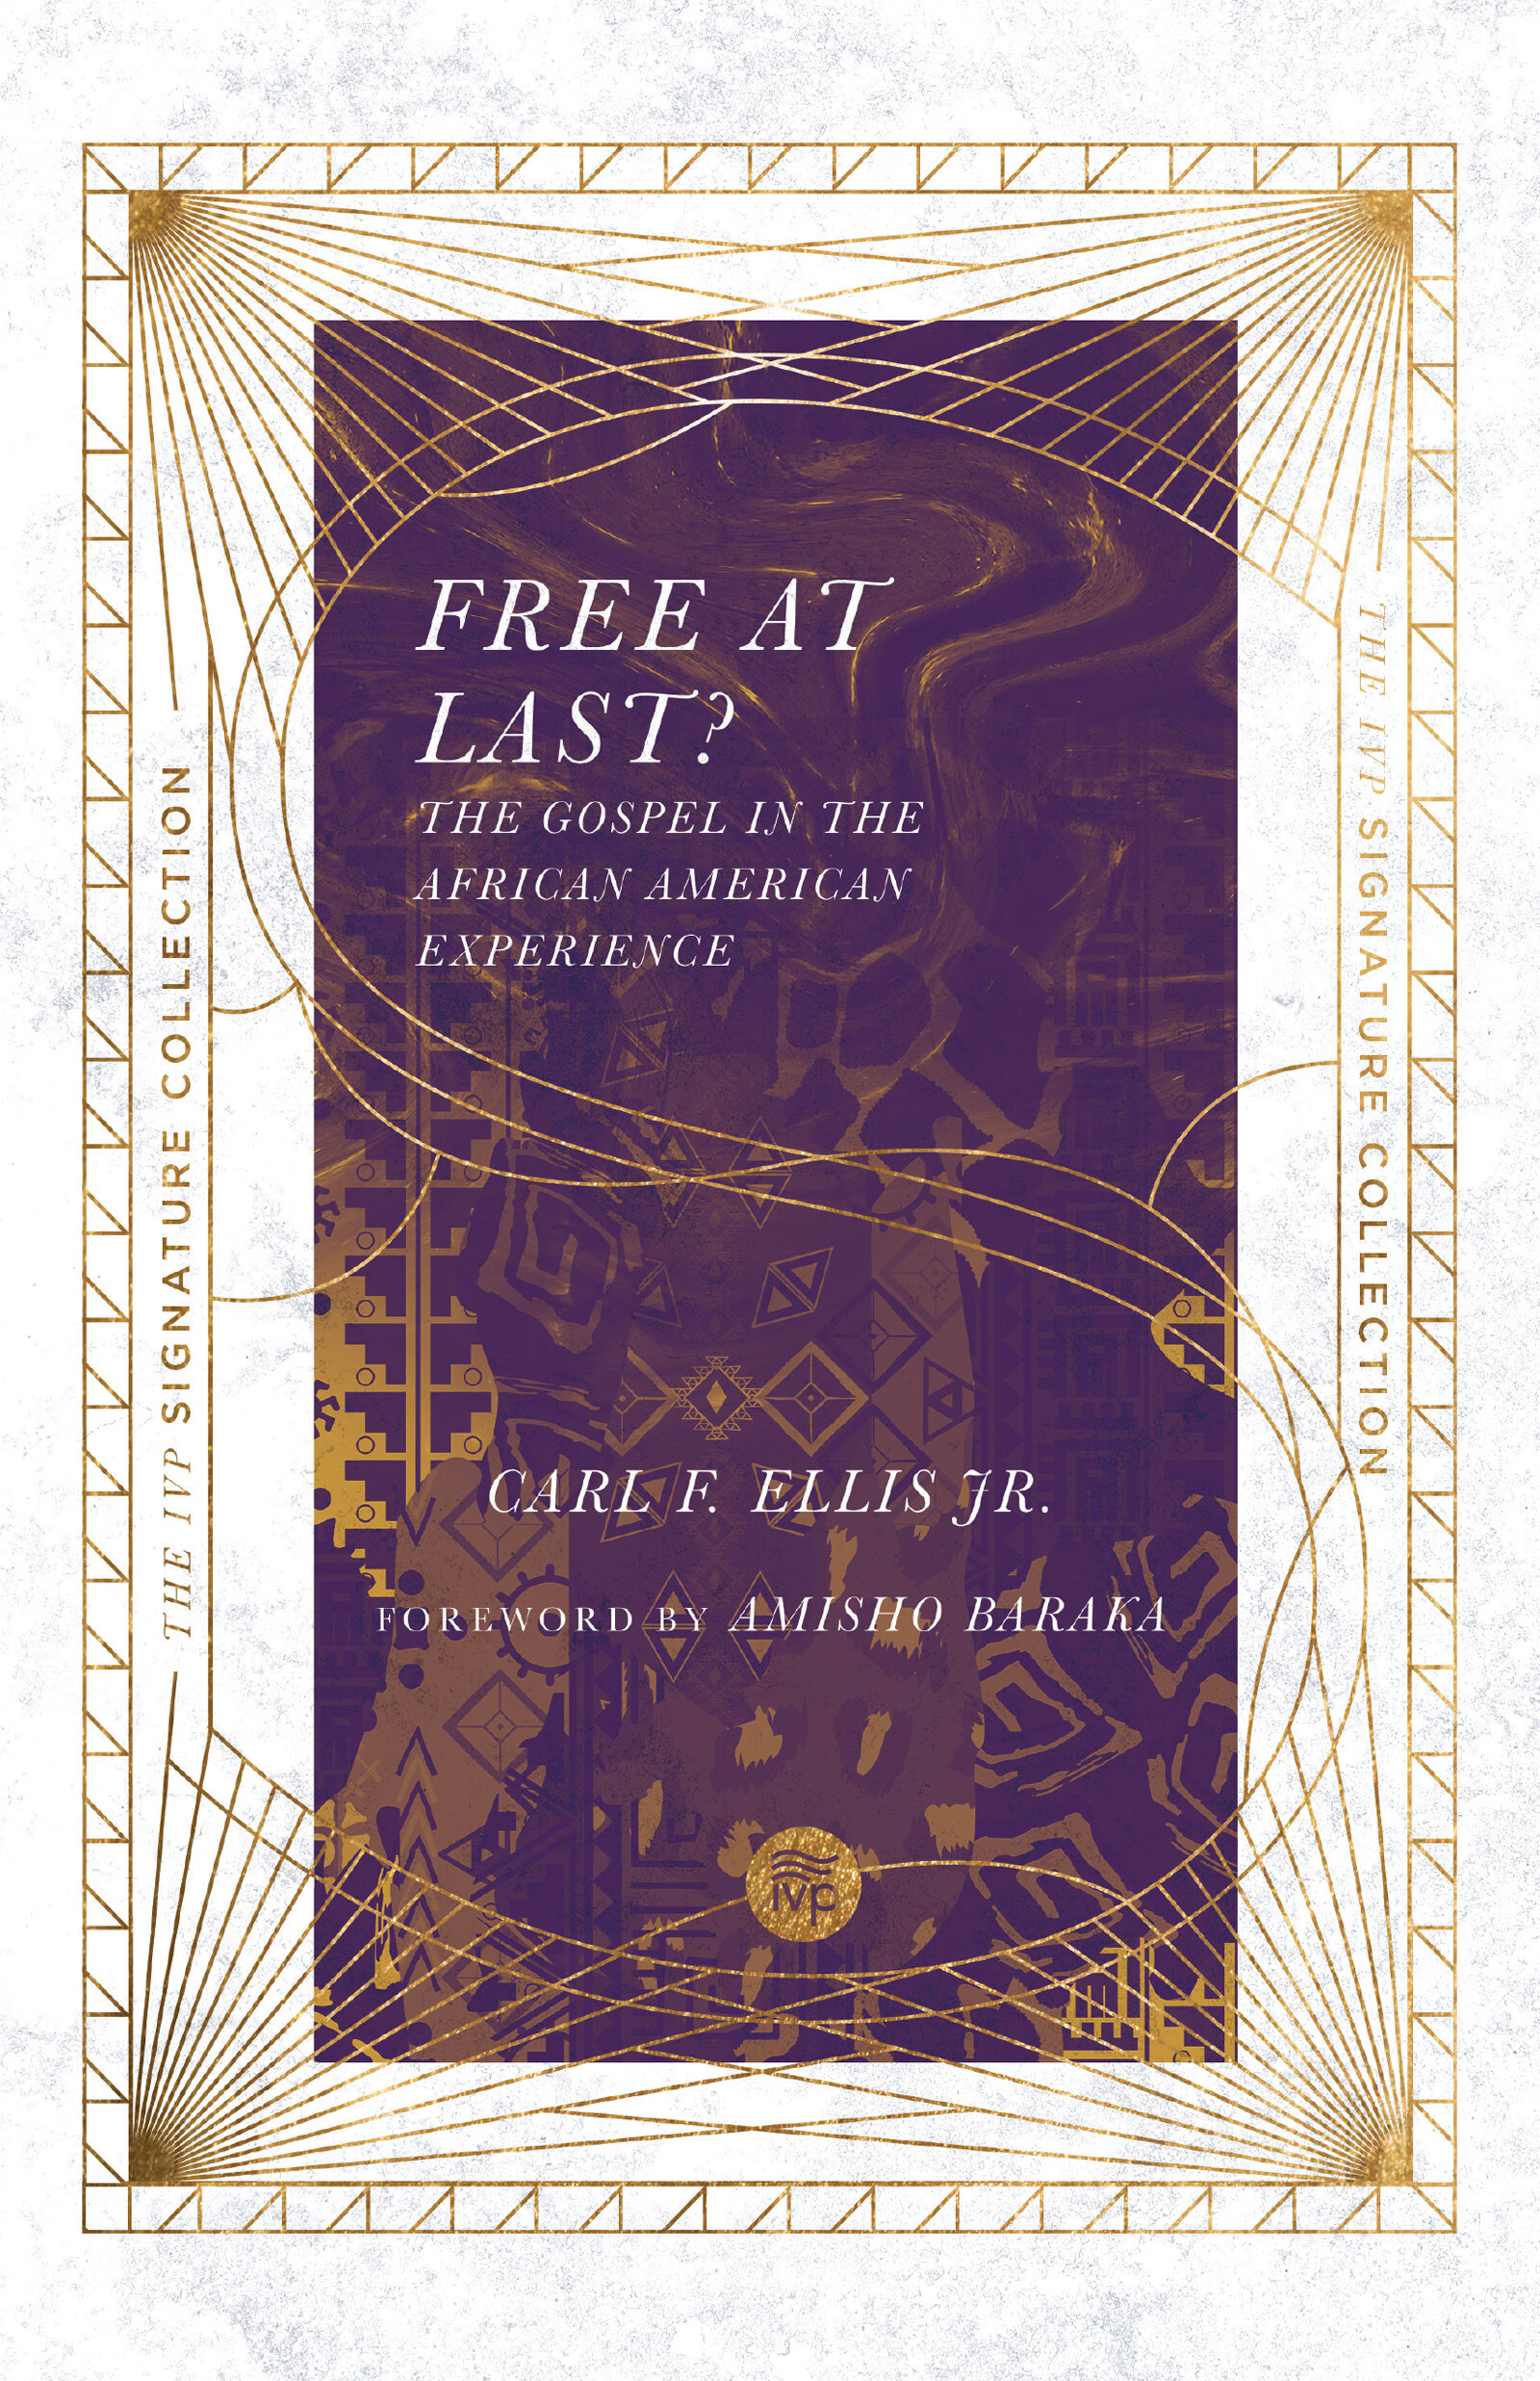 Free at Last? The Gospel in the African American Experience